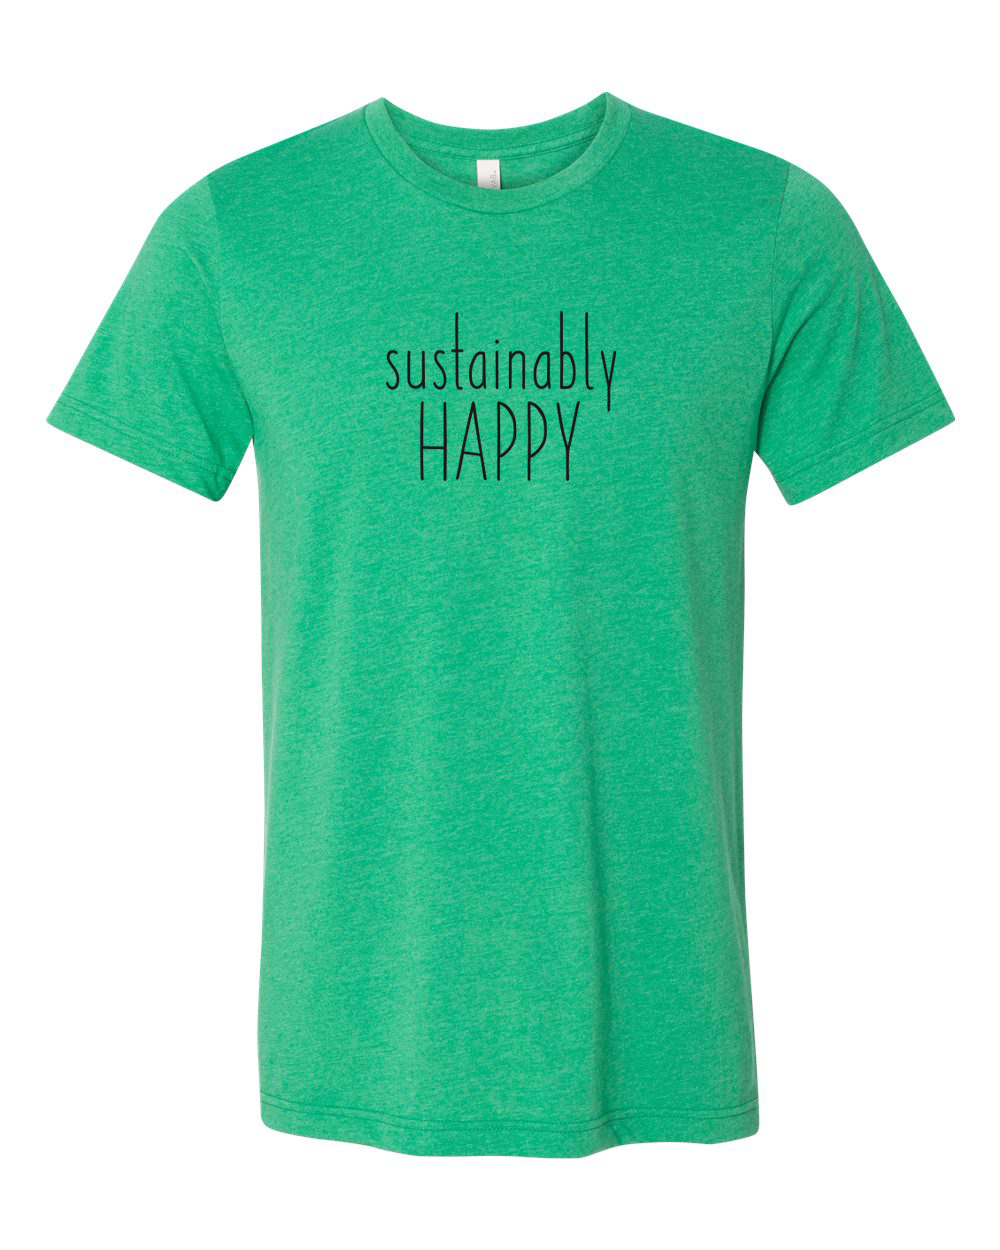 Sustainably Happy Mens T shirt